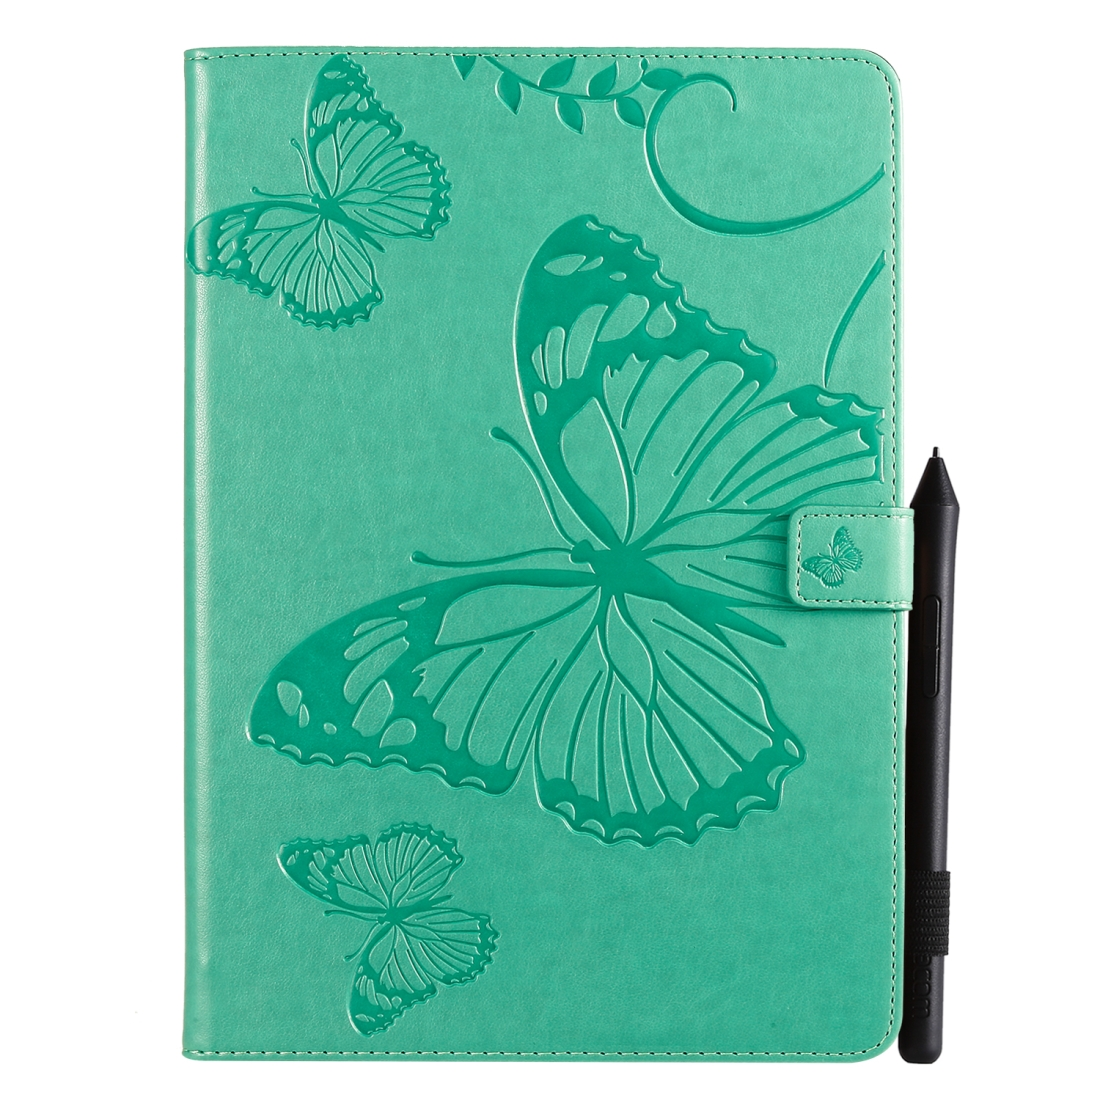 iPad 7th Generation Case (10.2 Inch) Also Fits /Pro 10.5/Air 2019 Leather Butterfly Design (Green)